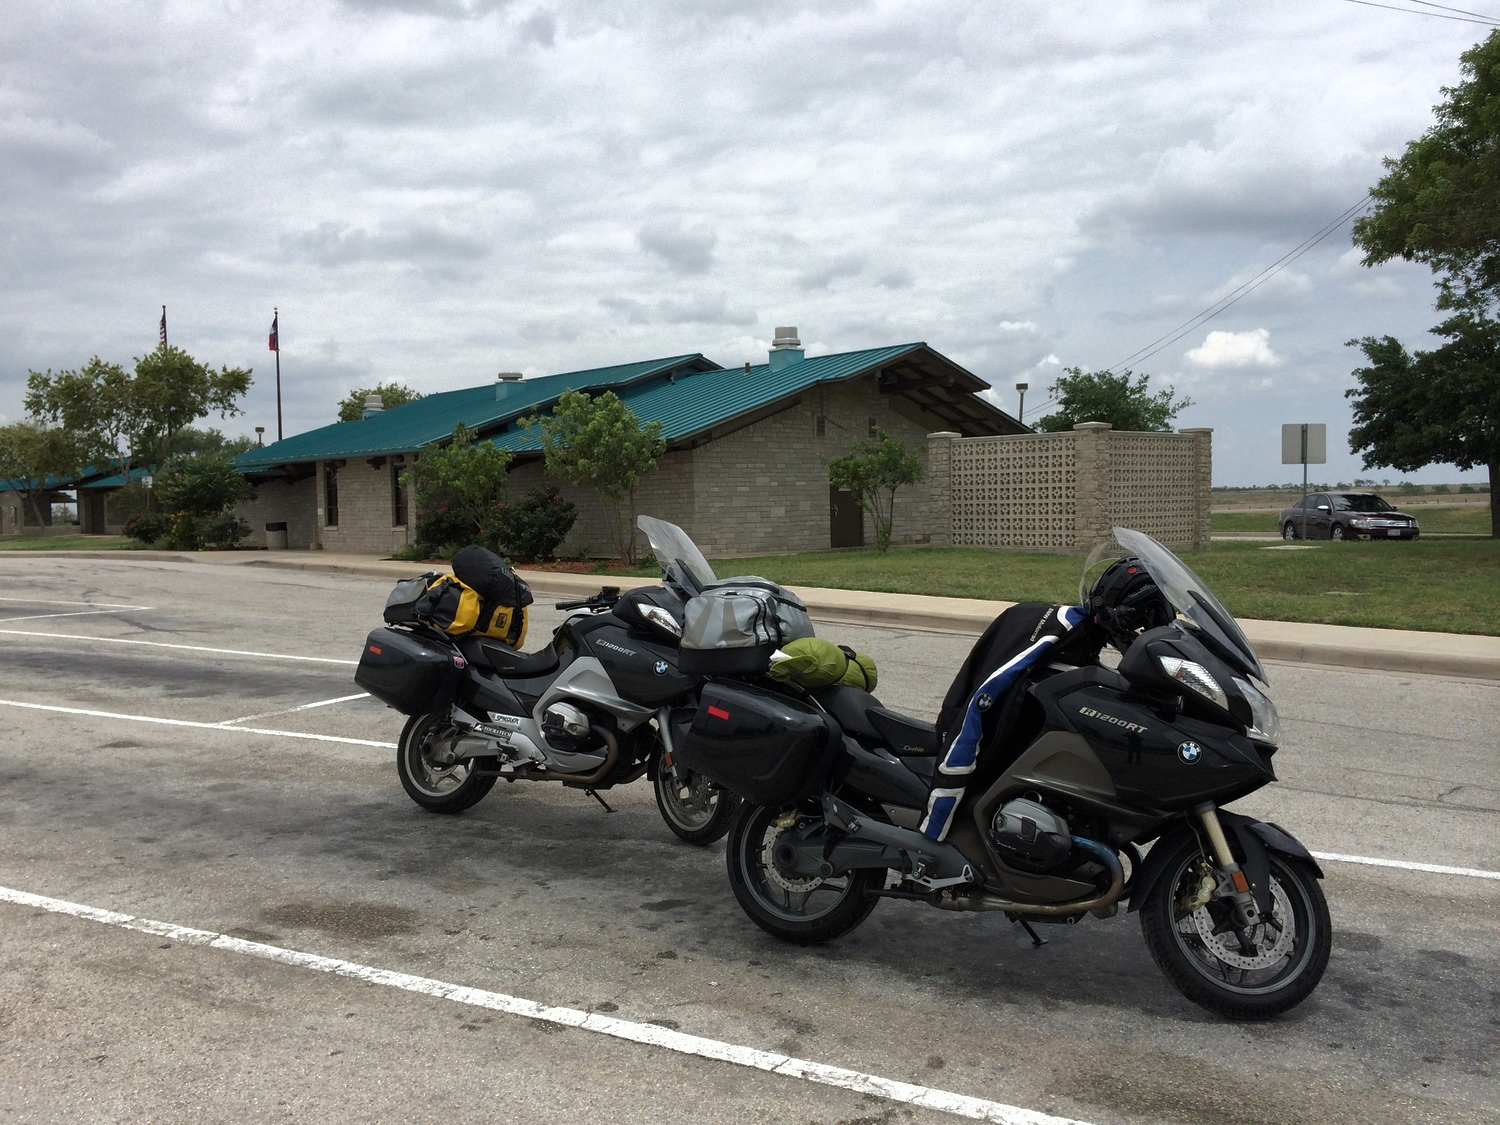 Rest Stop outside of Three Rivers, Texas